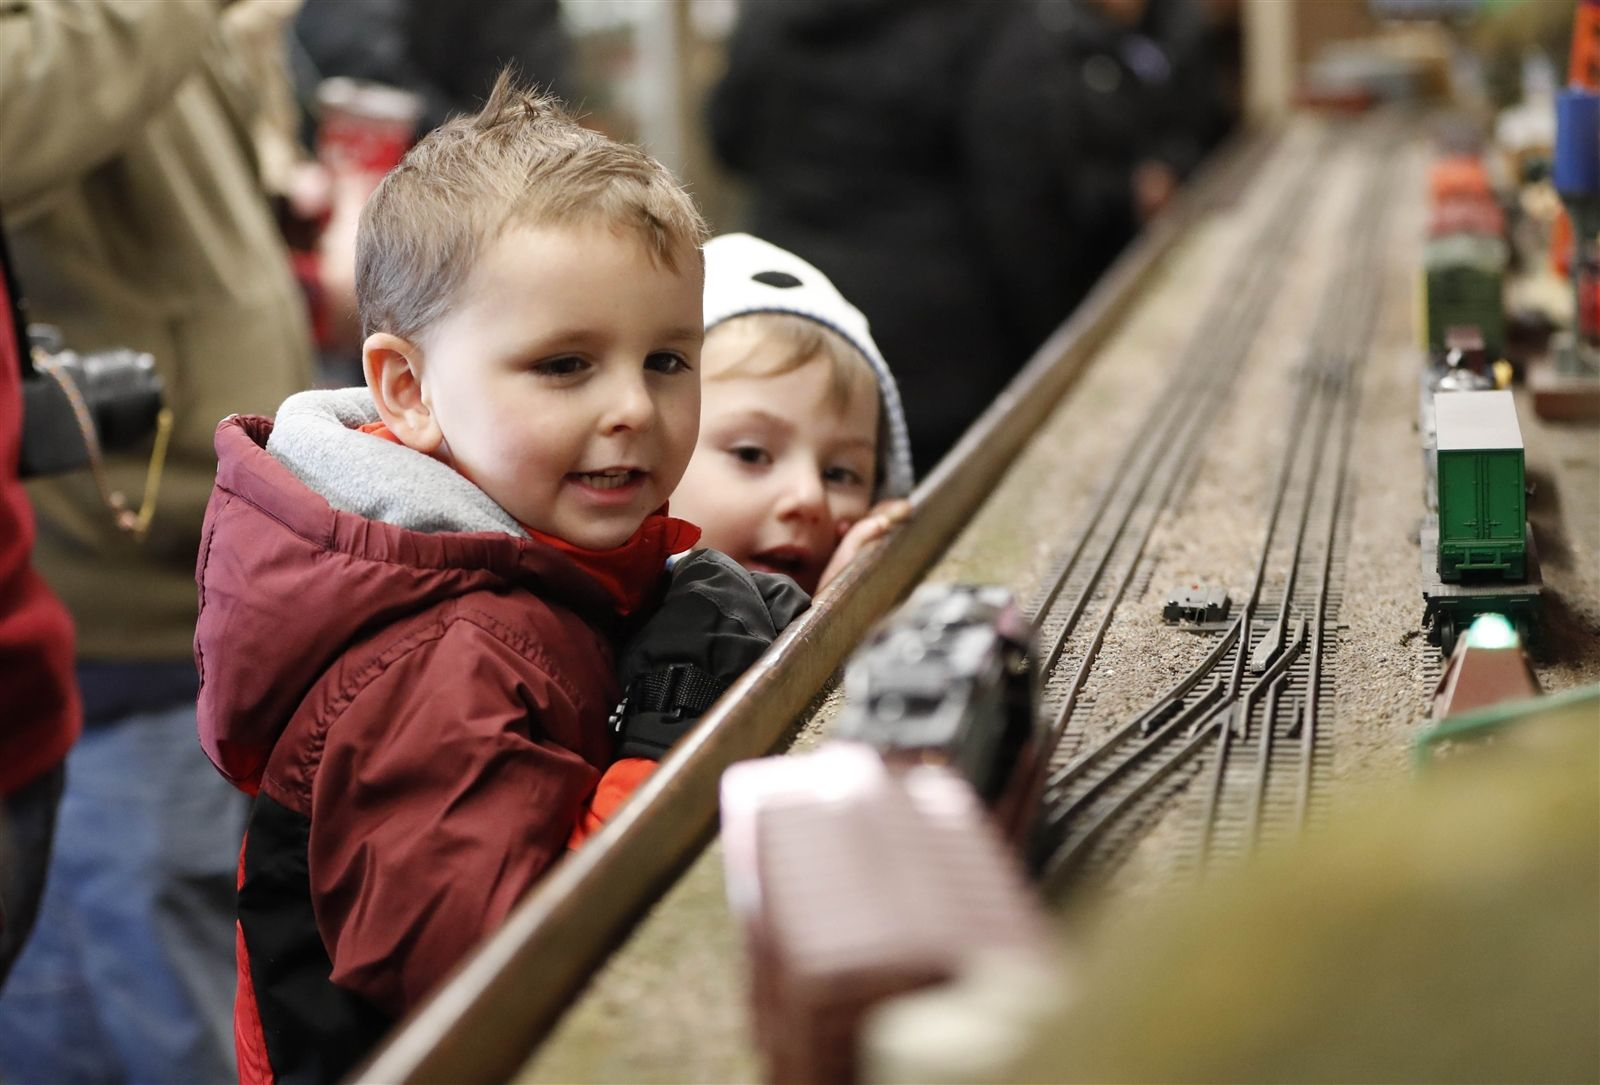 Matthew Jackson, 5, left, and Zak Ion, 3, watches the trains in an operating train exhibit at Artcraft Toy Trains before Santa arrives.